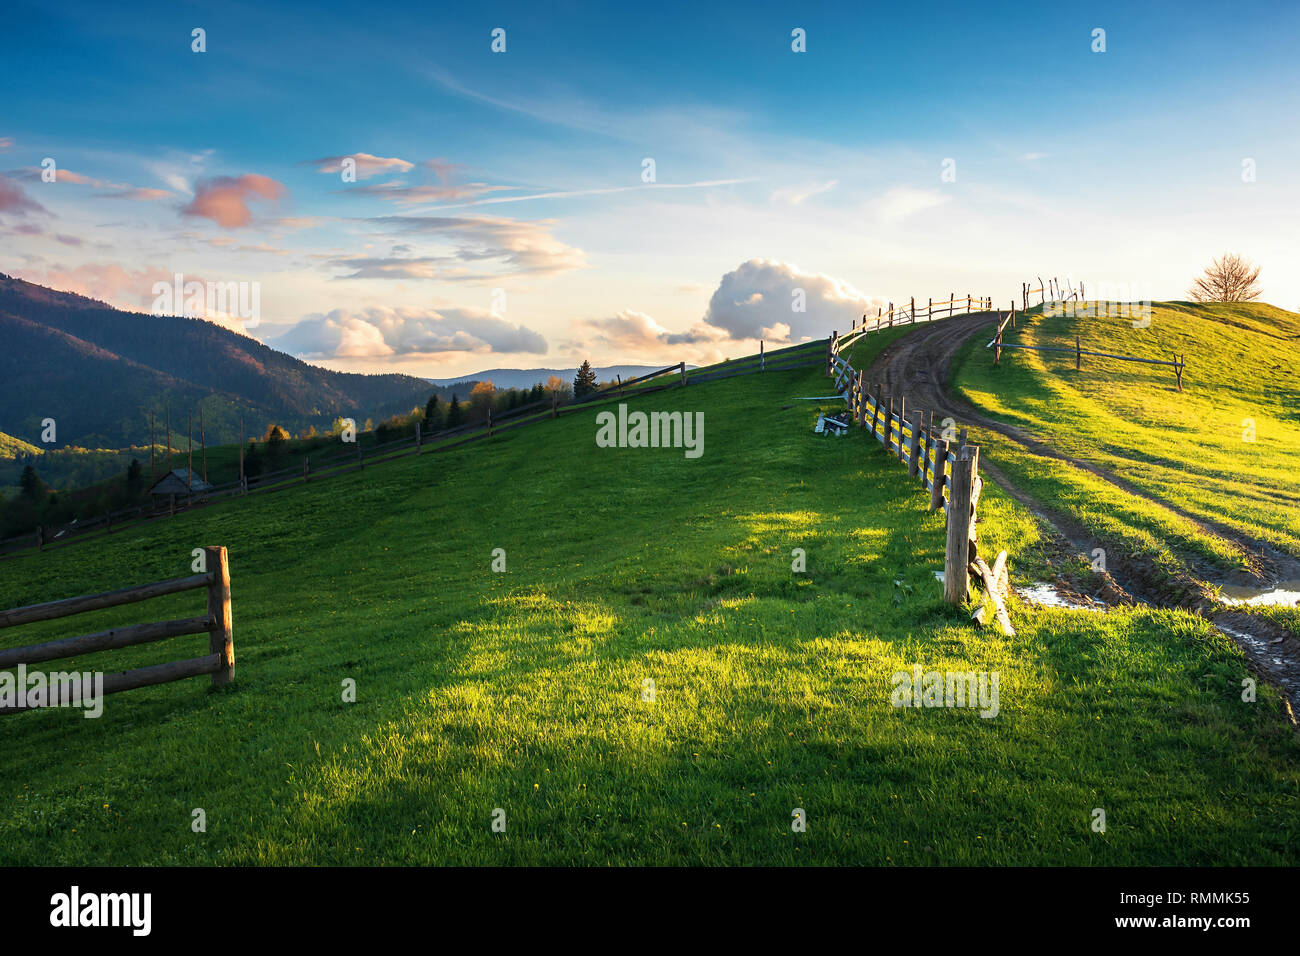 beautiful countryside scenery in mountains. fence on the grassy field. country road uphill the knoll. wonderful springtime weather at sunset with redd - Stock Image